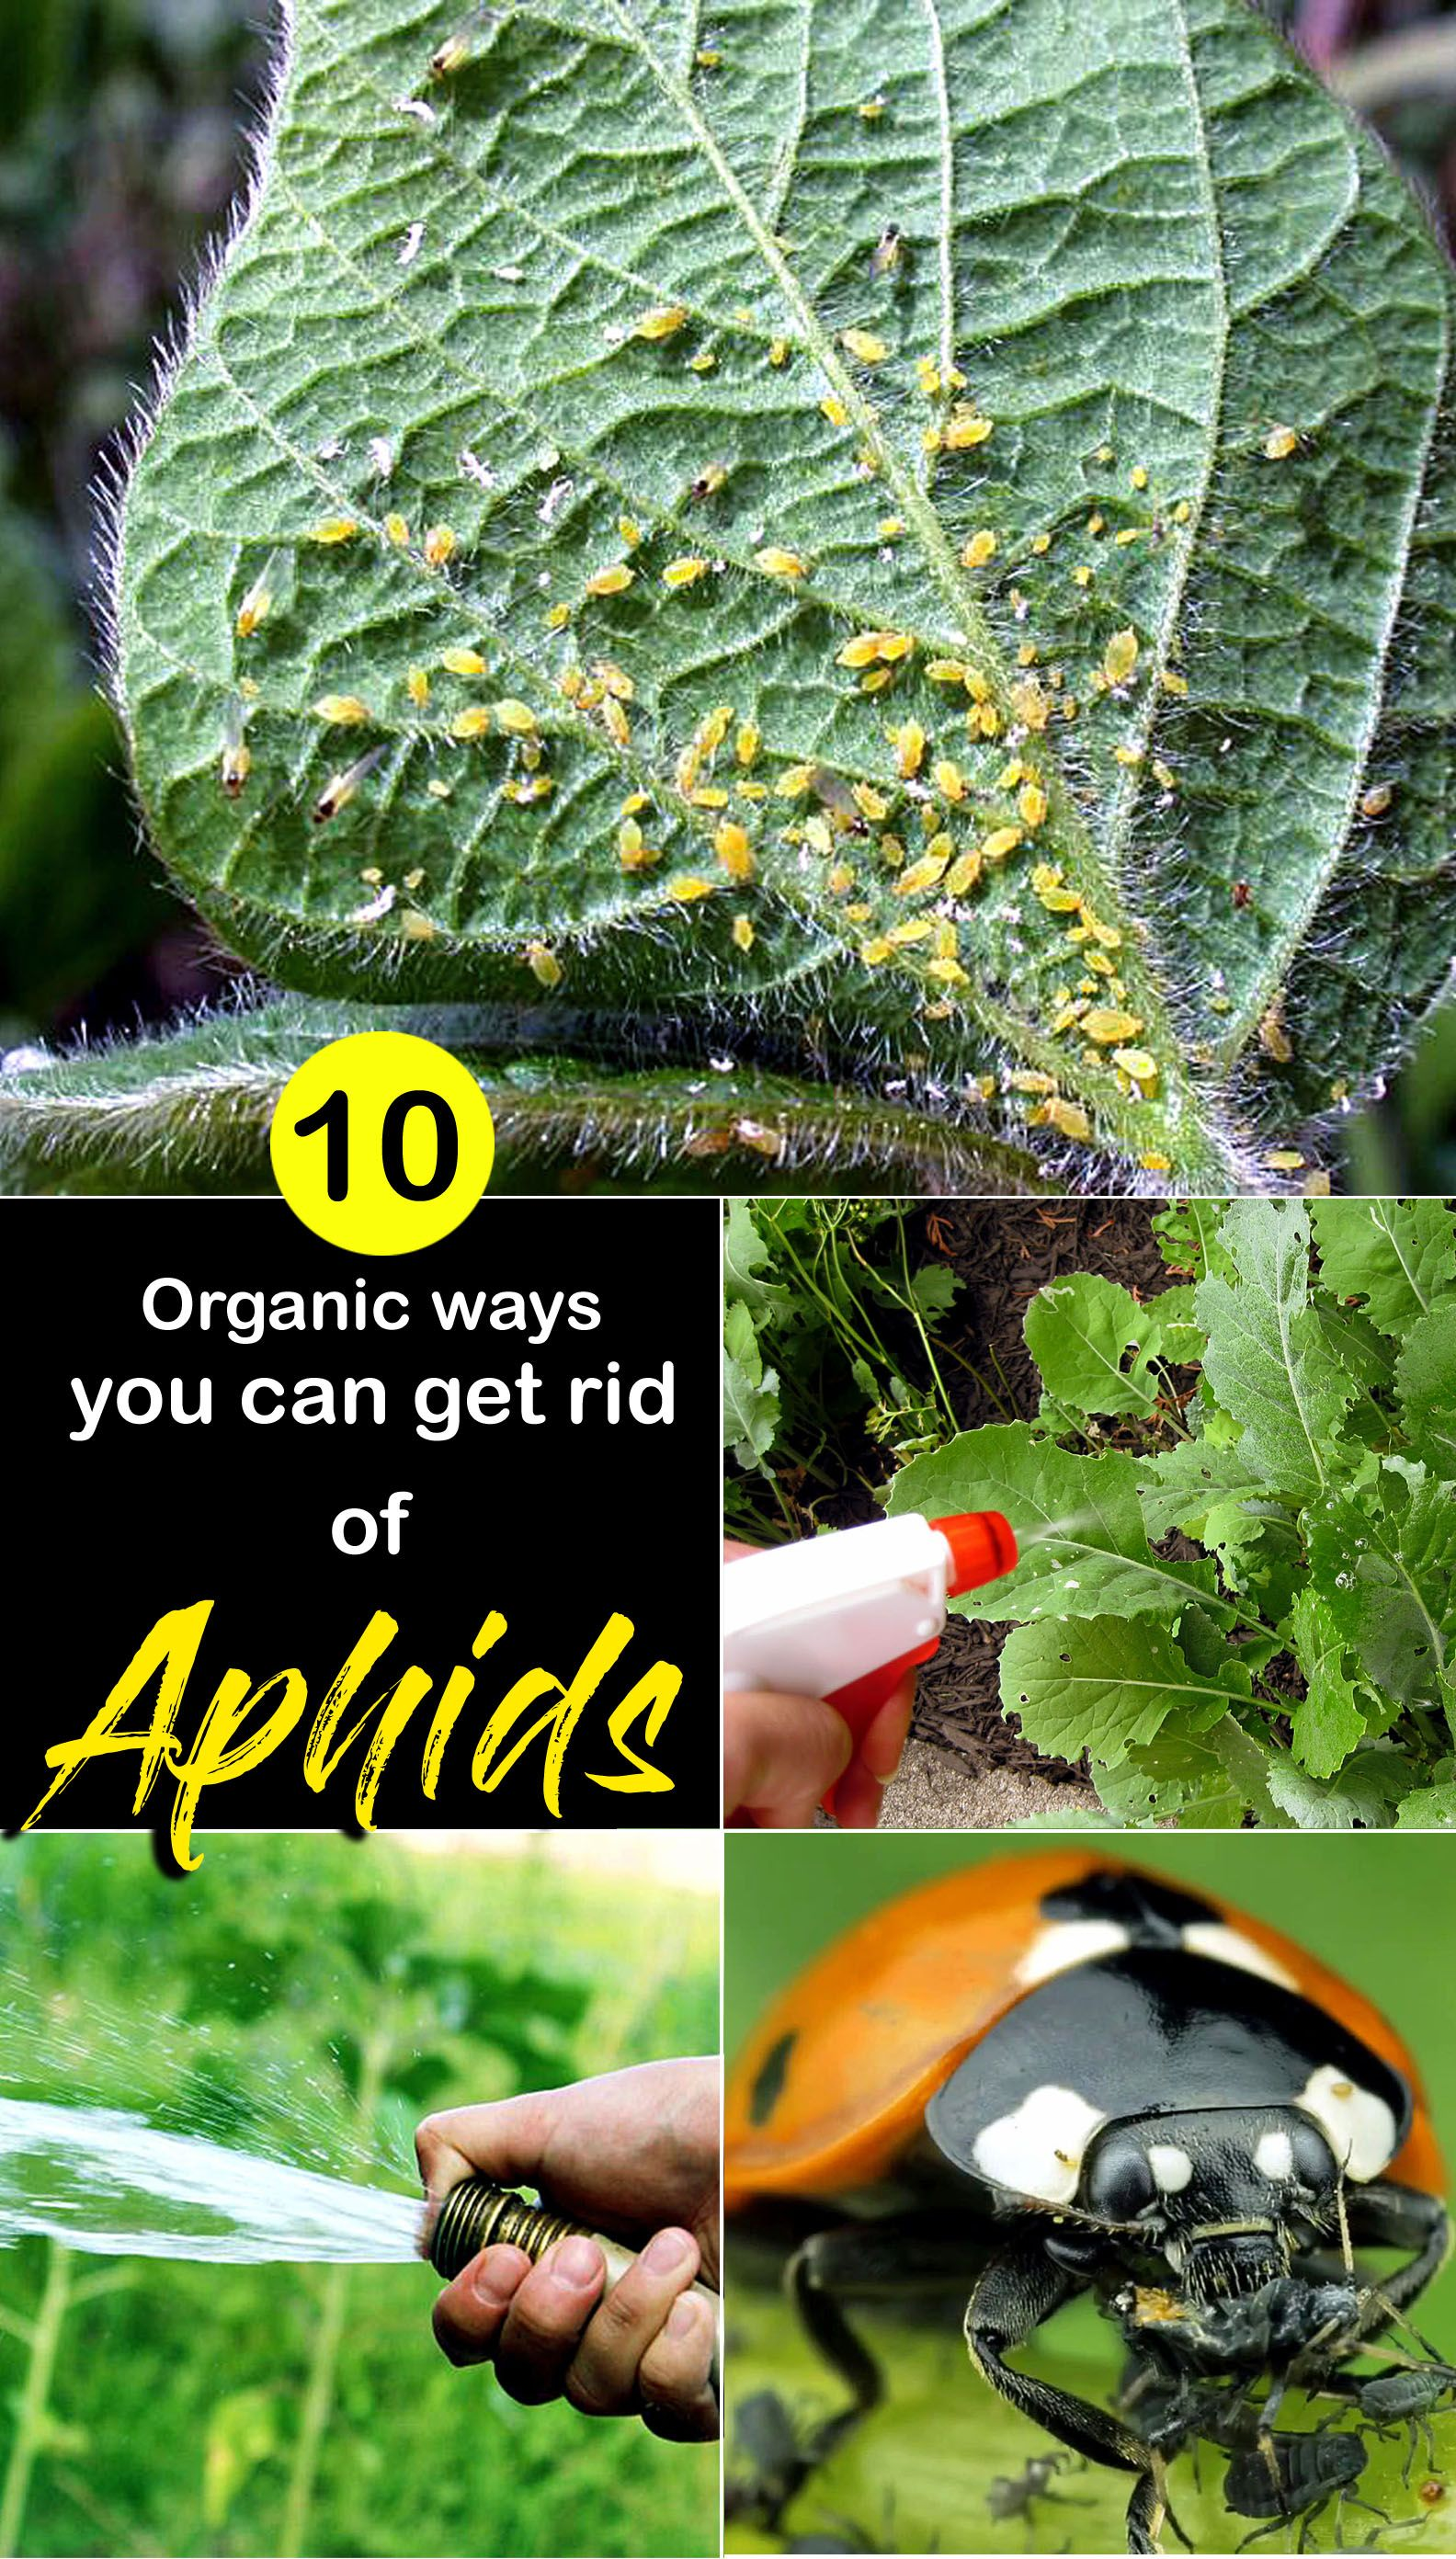 How to get rid of aphids get rid of aphids garden care